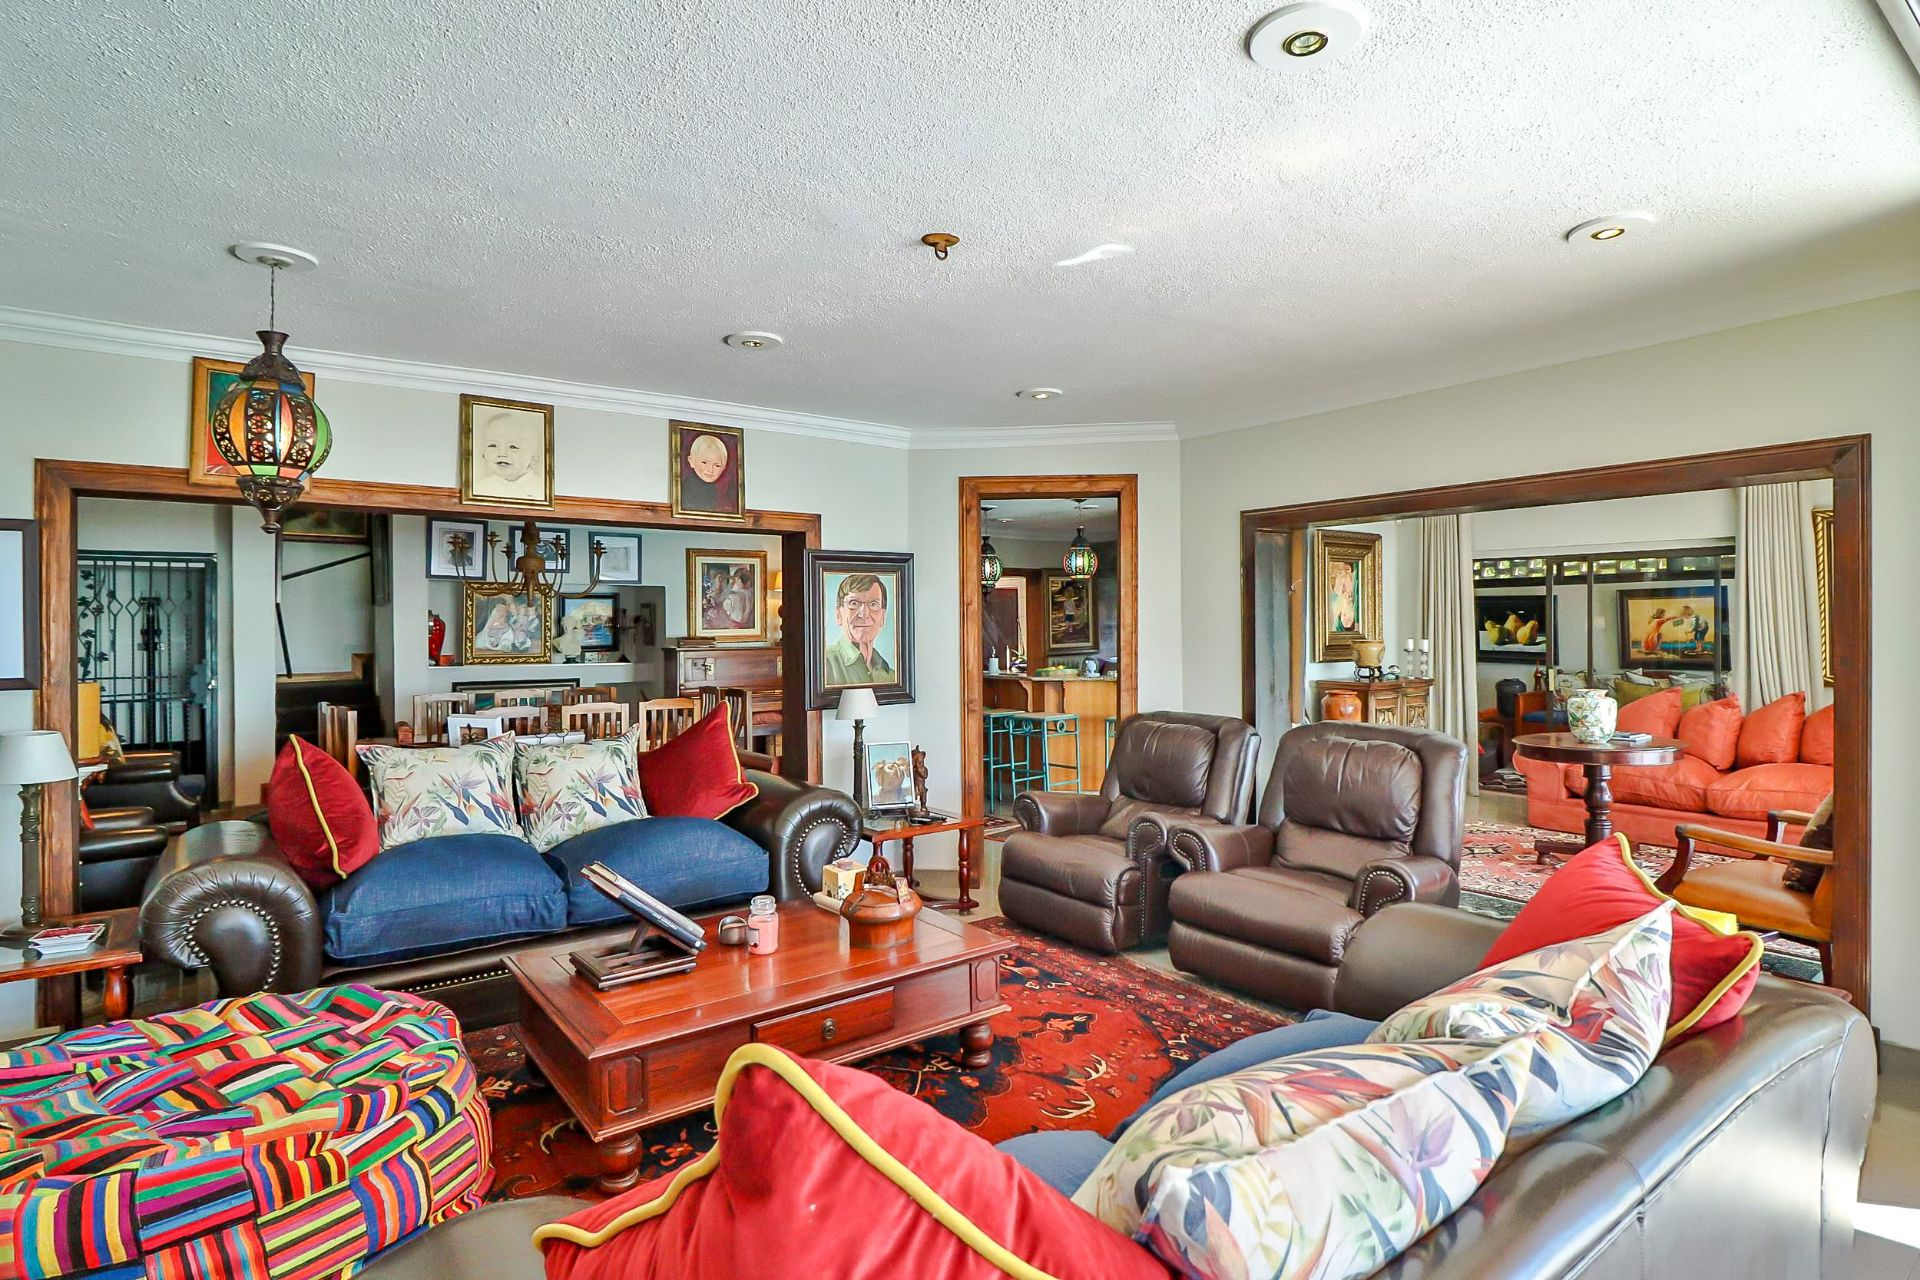 House in Kosmos Village - Lounge and dining areas flow beautifully, and there is space for all!